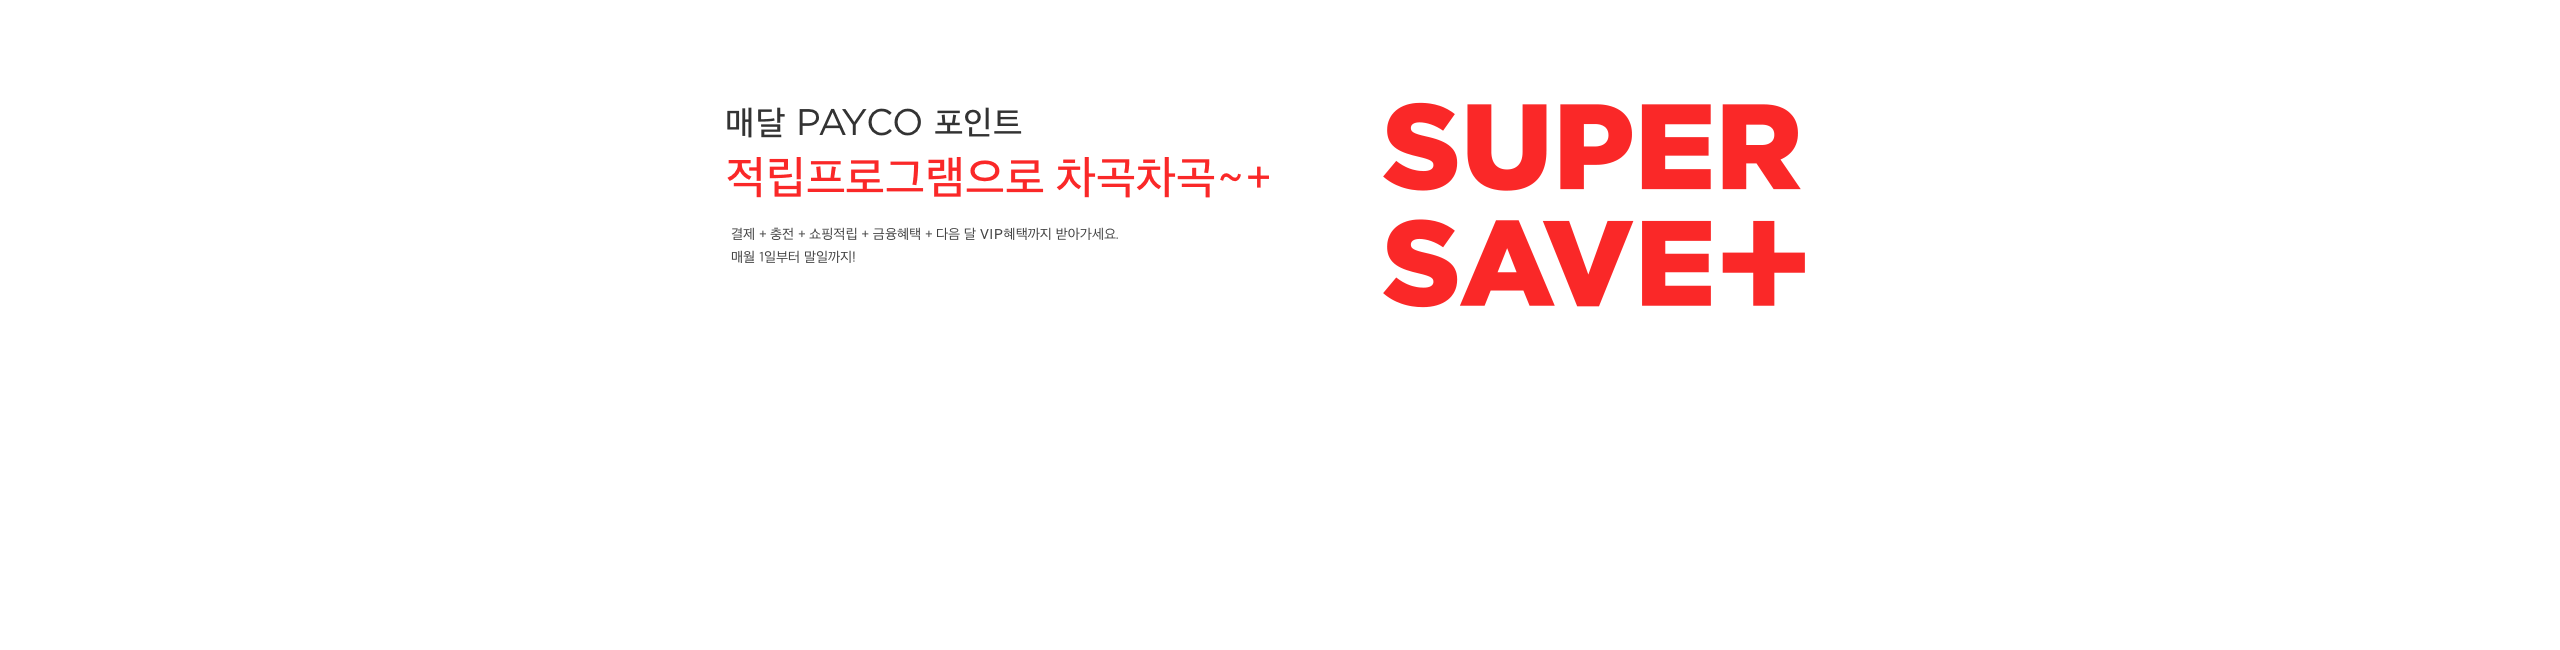 PAYCO SUPER SAVE+